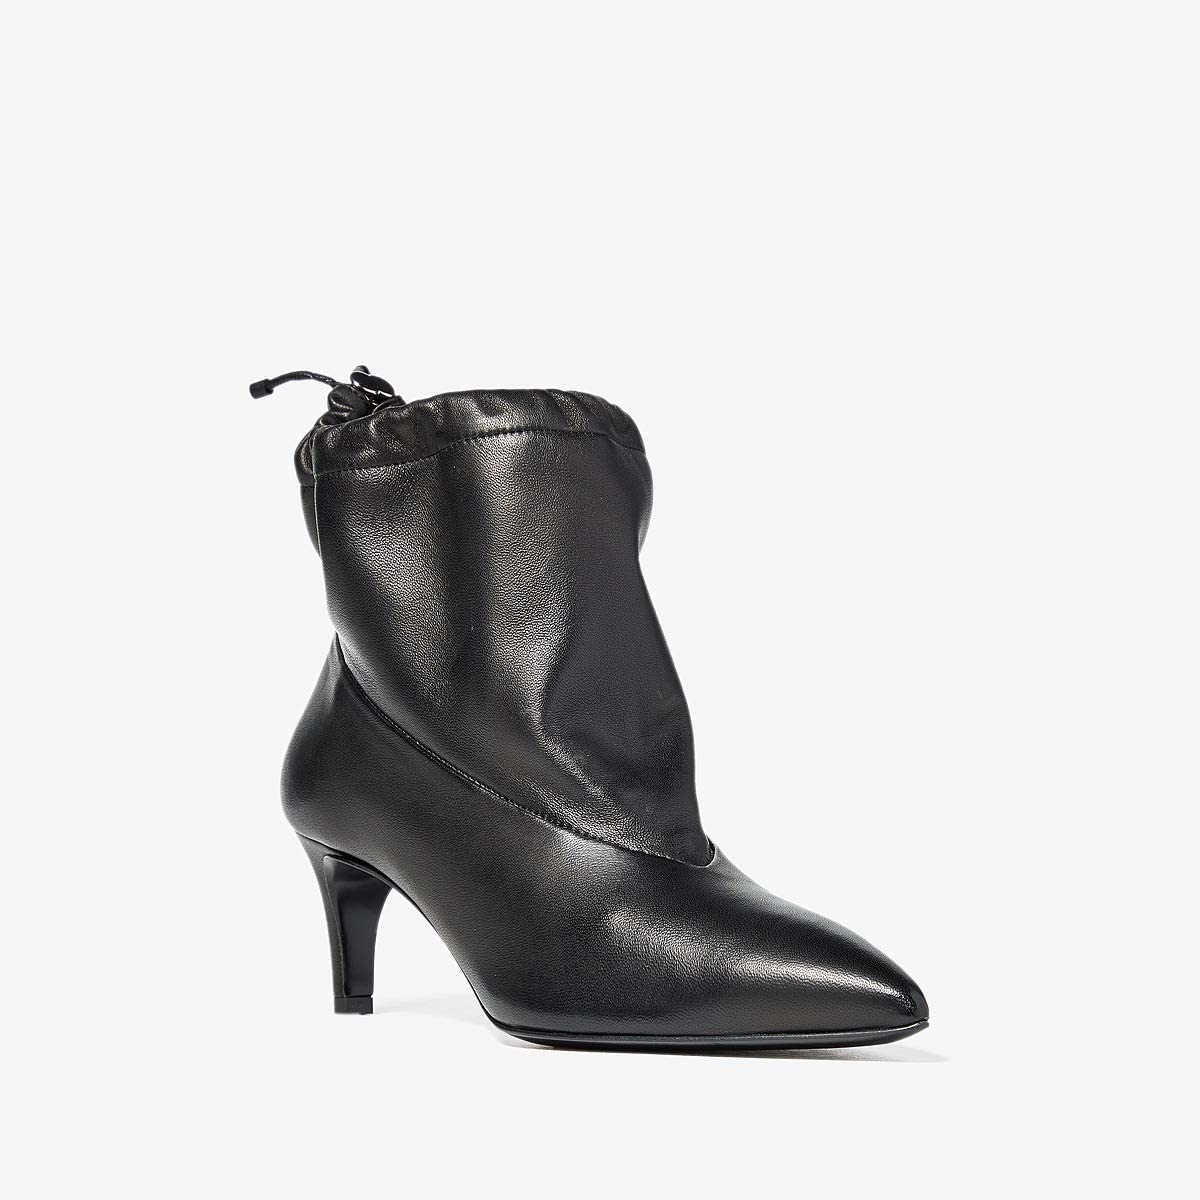 3.1 Phillip Lim Esther 60mm Slouch Bootie | Women's shoes | 2020 Newest